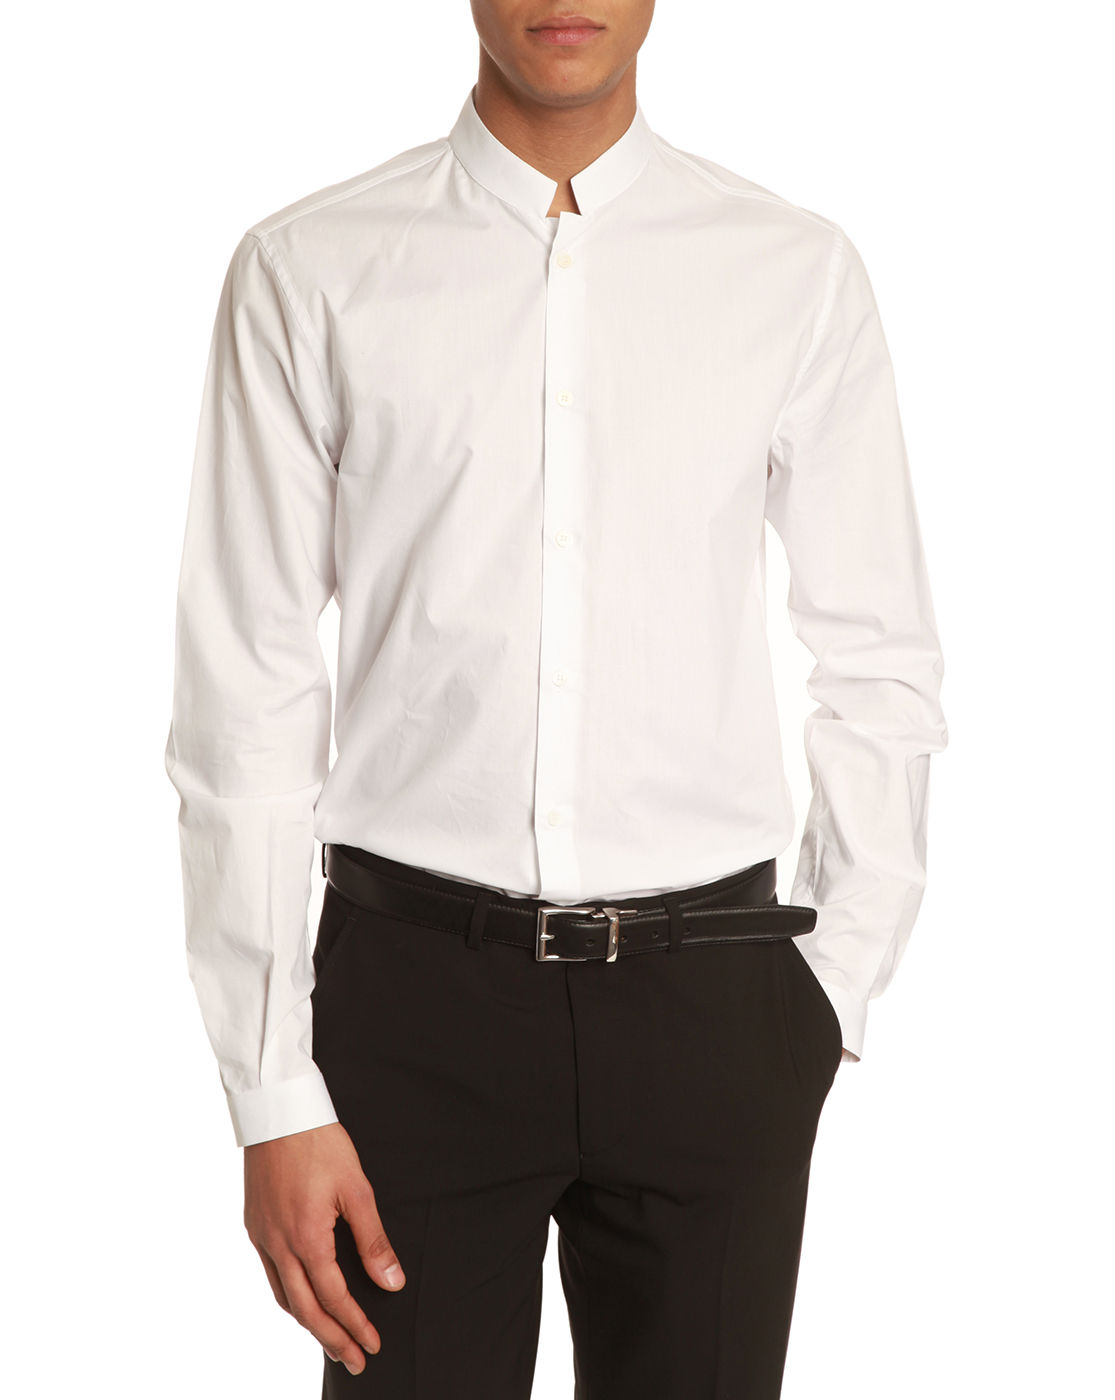 Find great deals on eBay for navy blue collar shirt. Shop with confidence.